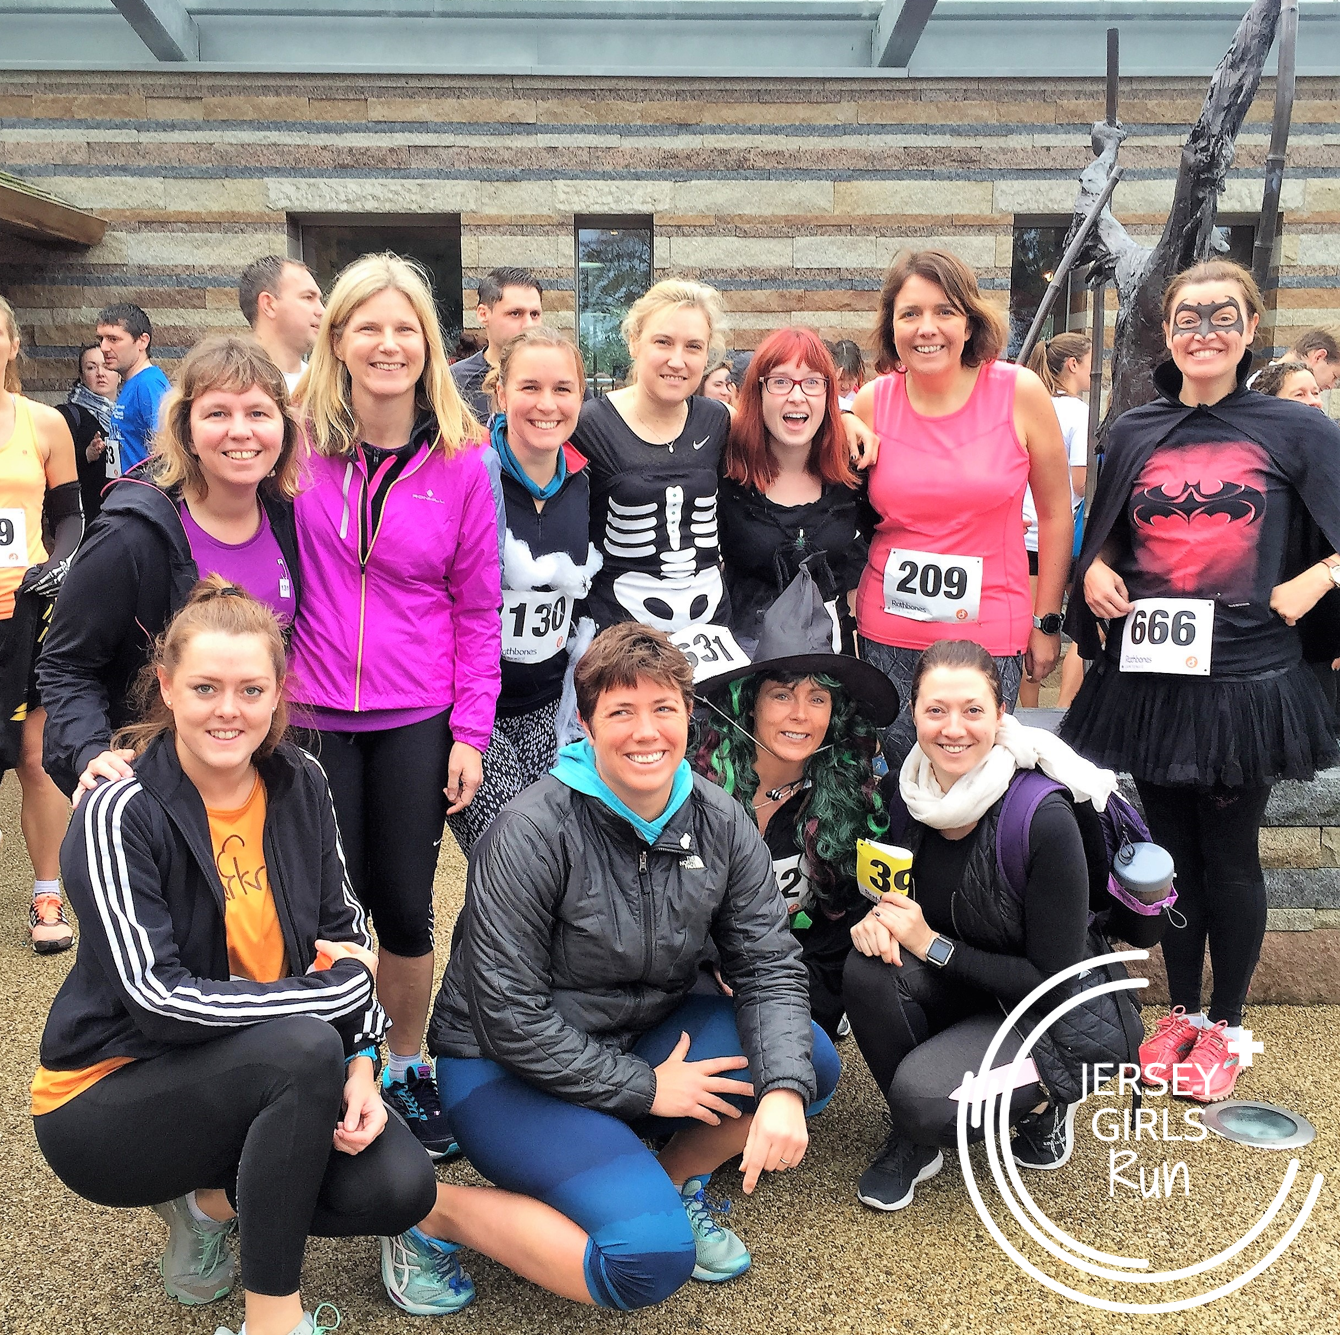 29 OCTOBER 2017 - 13k Durrell Dash - Some JERSEY GIRLS stepped up to the challenging 13k Durrell Dash route which is now in it's 10th year.  There are plenty of hills on this route to work the legs and lungs but the hill training some of the girls had been doing the past week certainly paid off.  Extra kudos to those that ran in Halloween fancy dress!